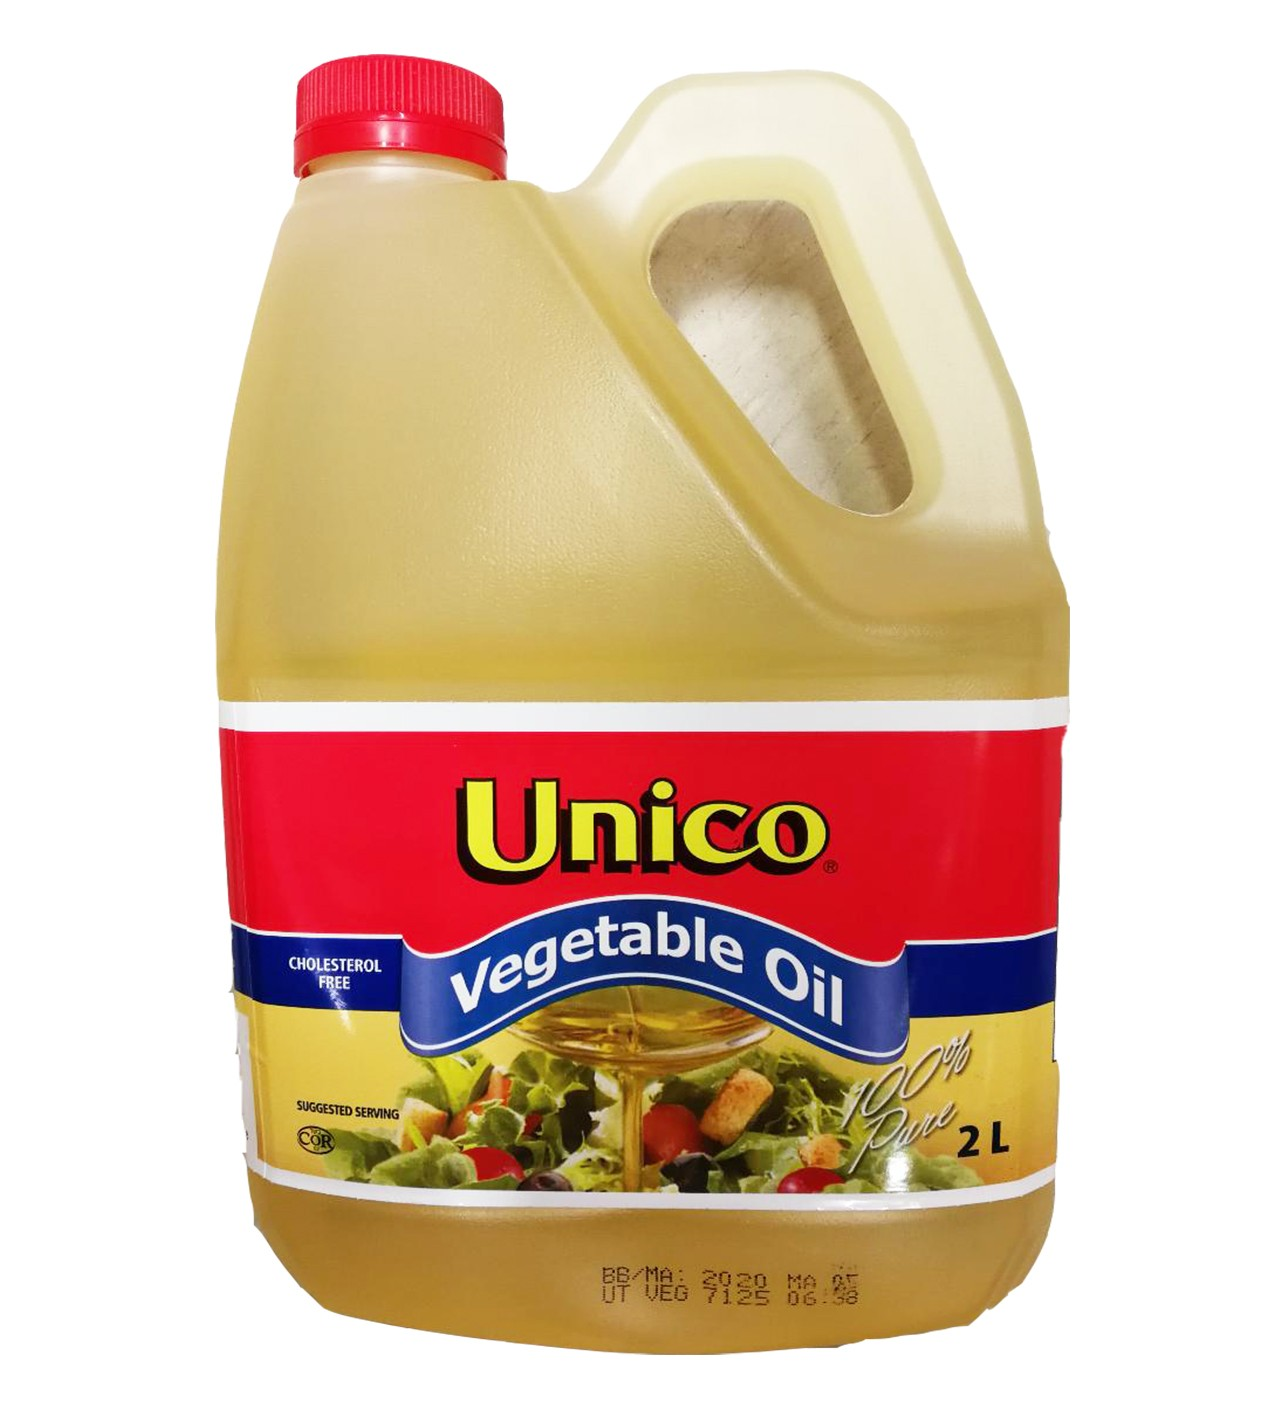 UNICO VEGETABLE OIL 2L